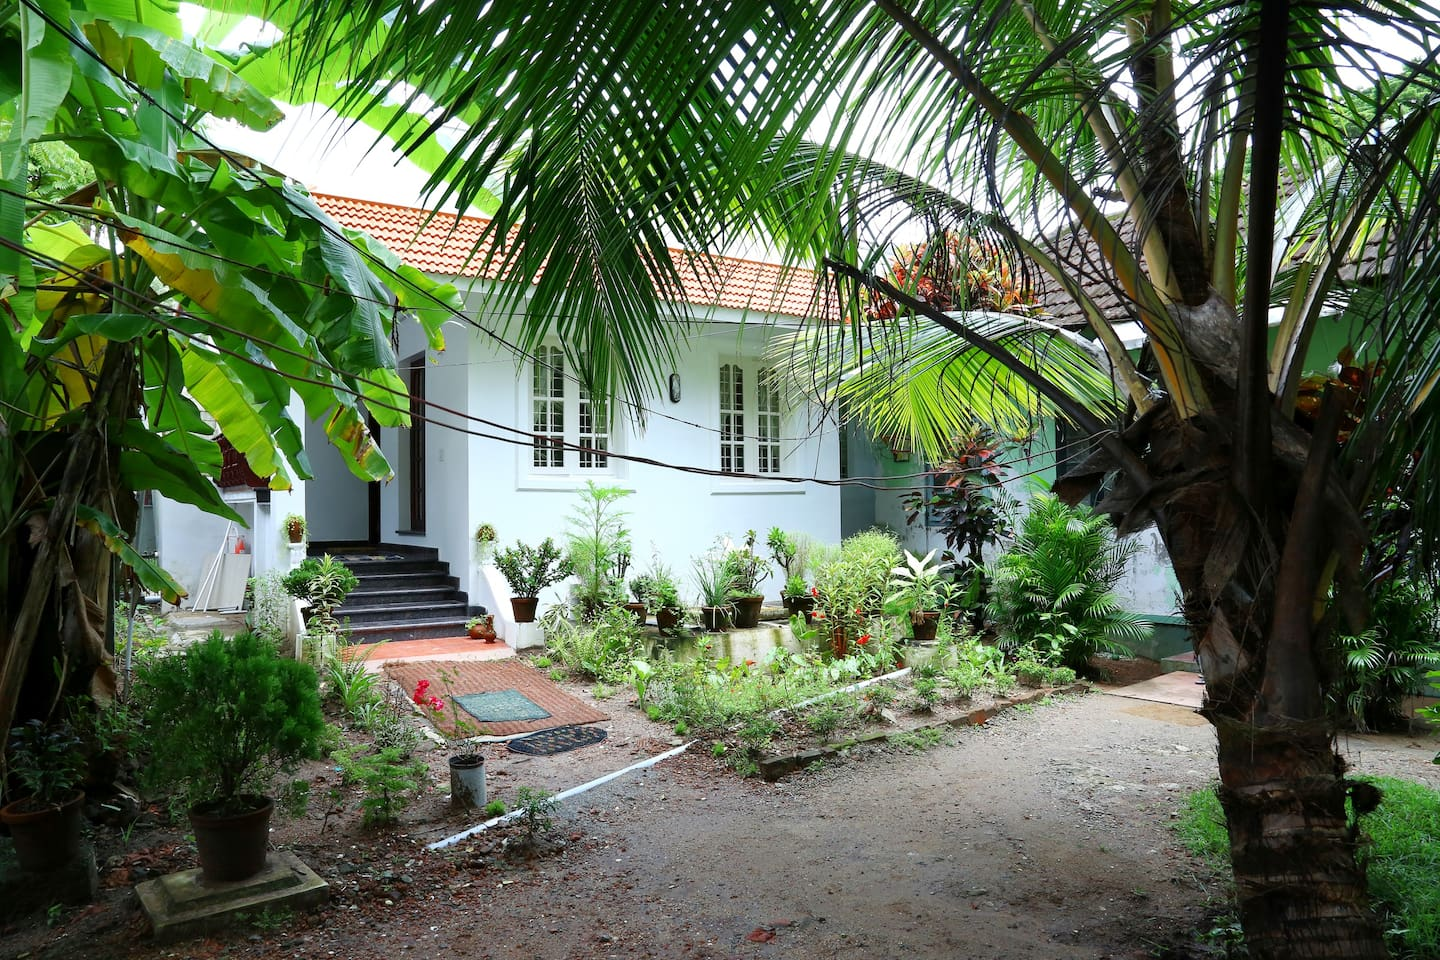 The entrance to our beautiful homestay